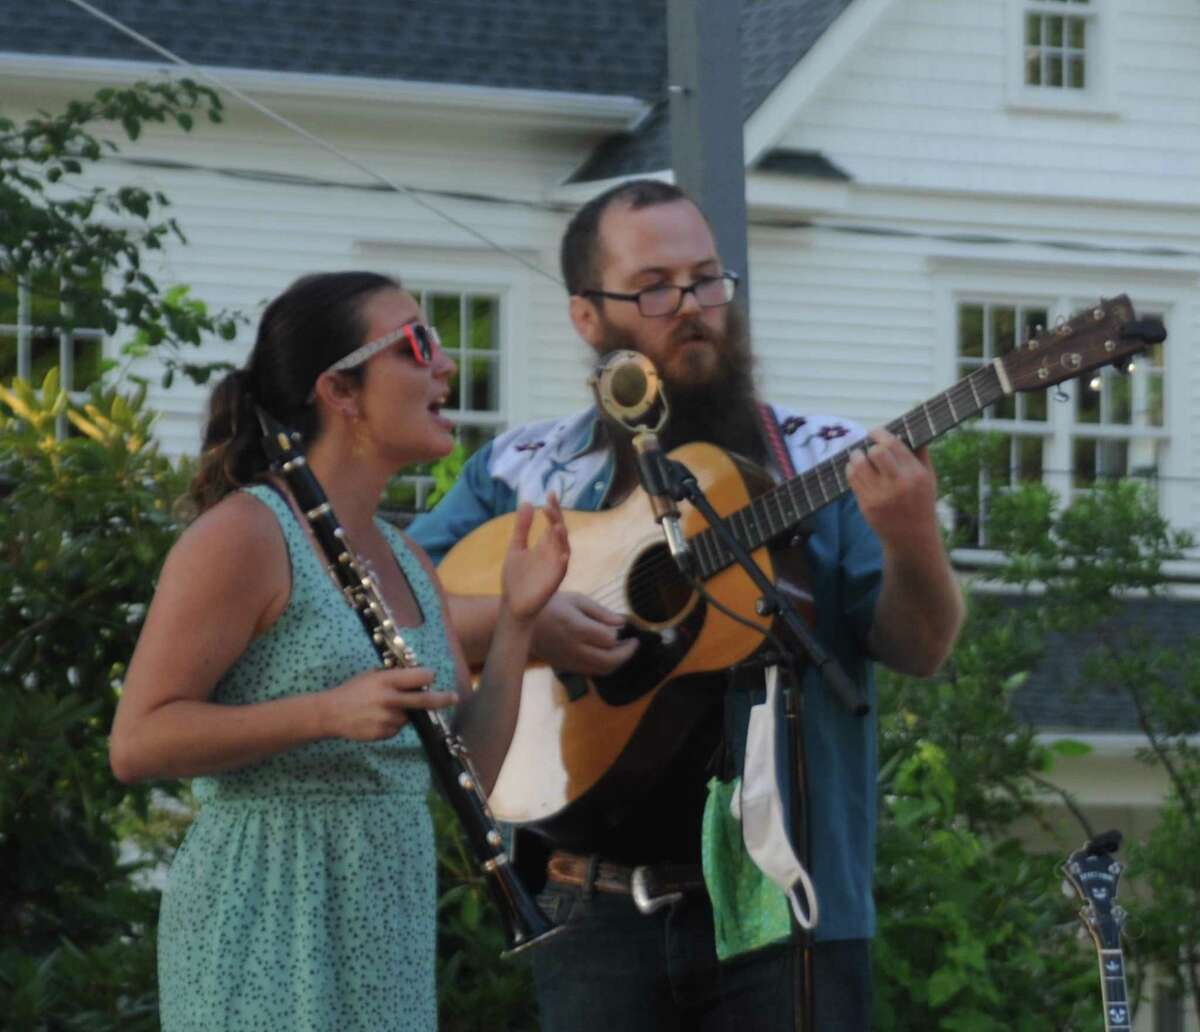 Vocalist Jesse Eliot Myhre and guitarist Chris Ousley, the Bumper Jacksons Duo, start the CHIRP music season in Ridgefield's Ballard Park on Thursday night, July 9. Next Tuesday evening The Mammals play.